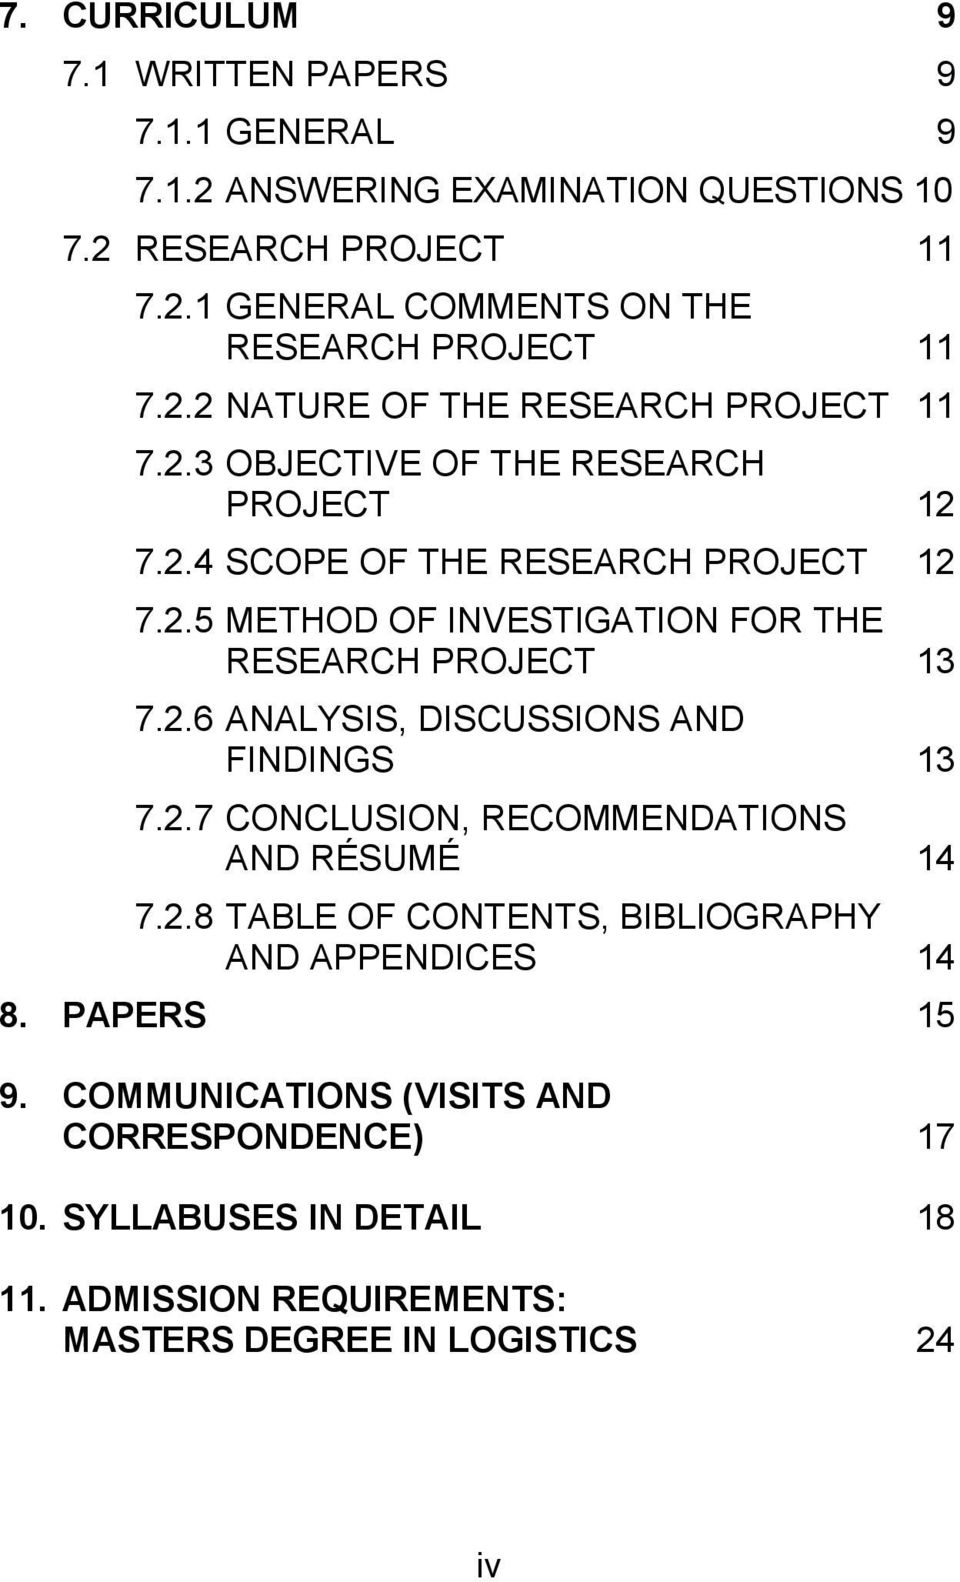 2.6 ANALYSIS, DISCUSSIONS AND FINDINGS 13 7.2.7 CONCLUSION, RECOMMENDATIONS AND RÉSUMÉ 14 7.2.8 TABLE OF CONTENTS, BIBLIOGRAPHY AND APPENDICES 14 8. PAPERS 15 9.